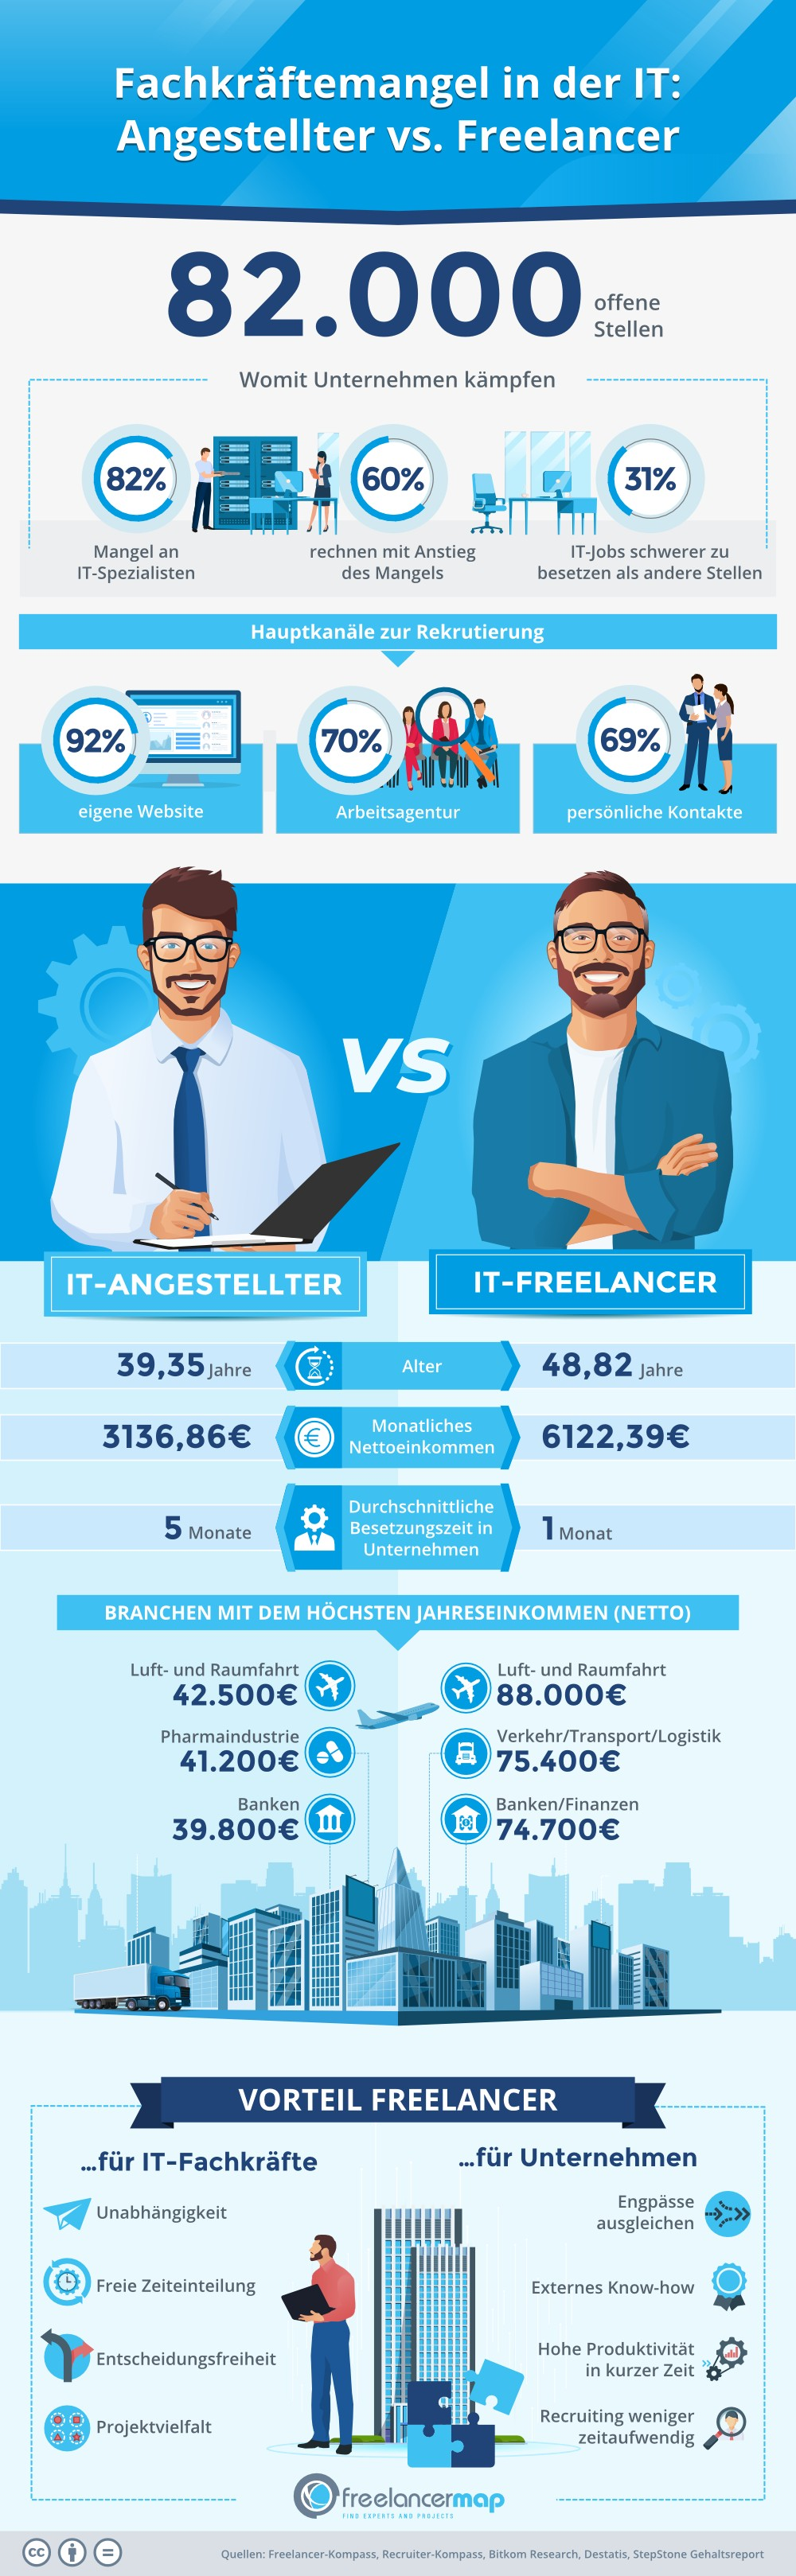 Fachkräftemangel in der IT: IT-Angestellter vs. IT-Freelancer